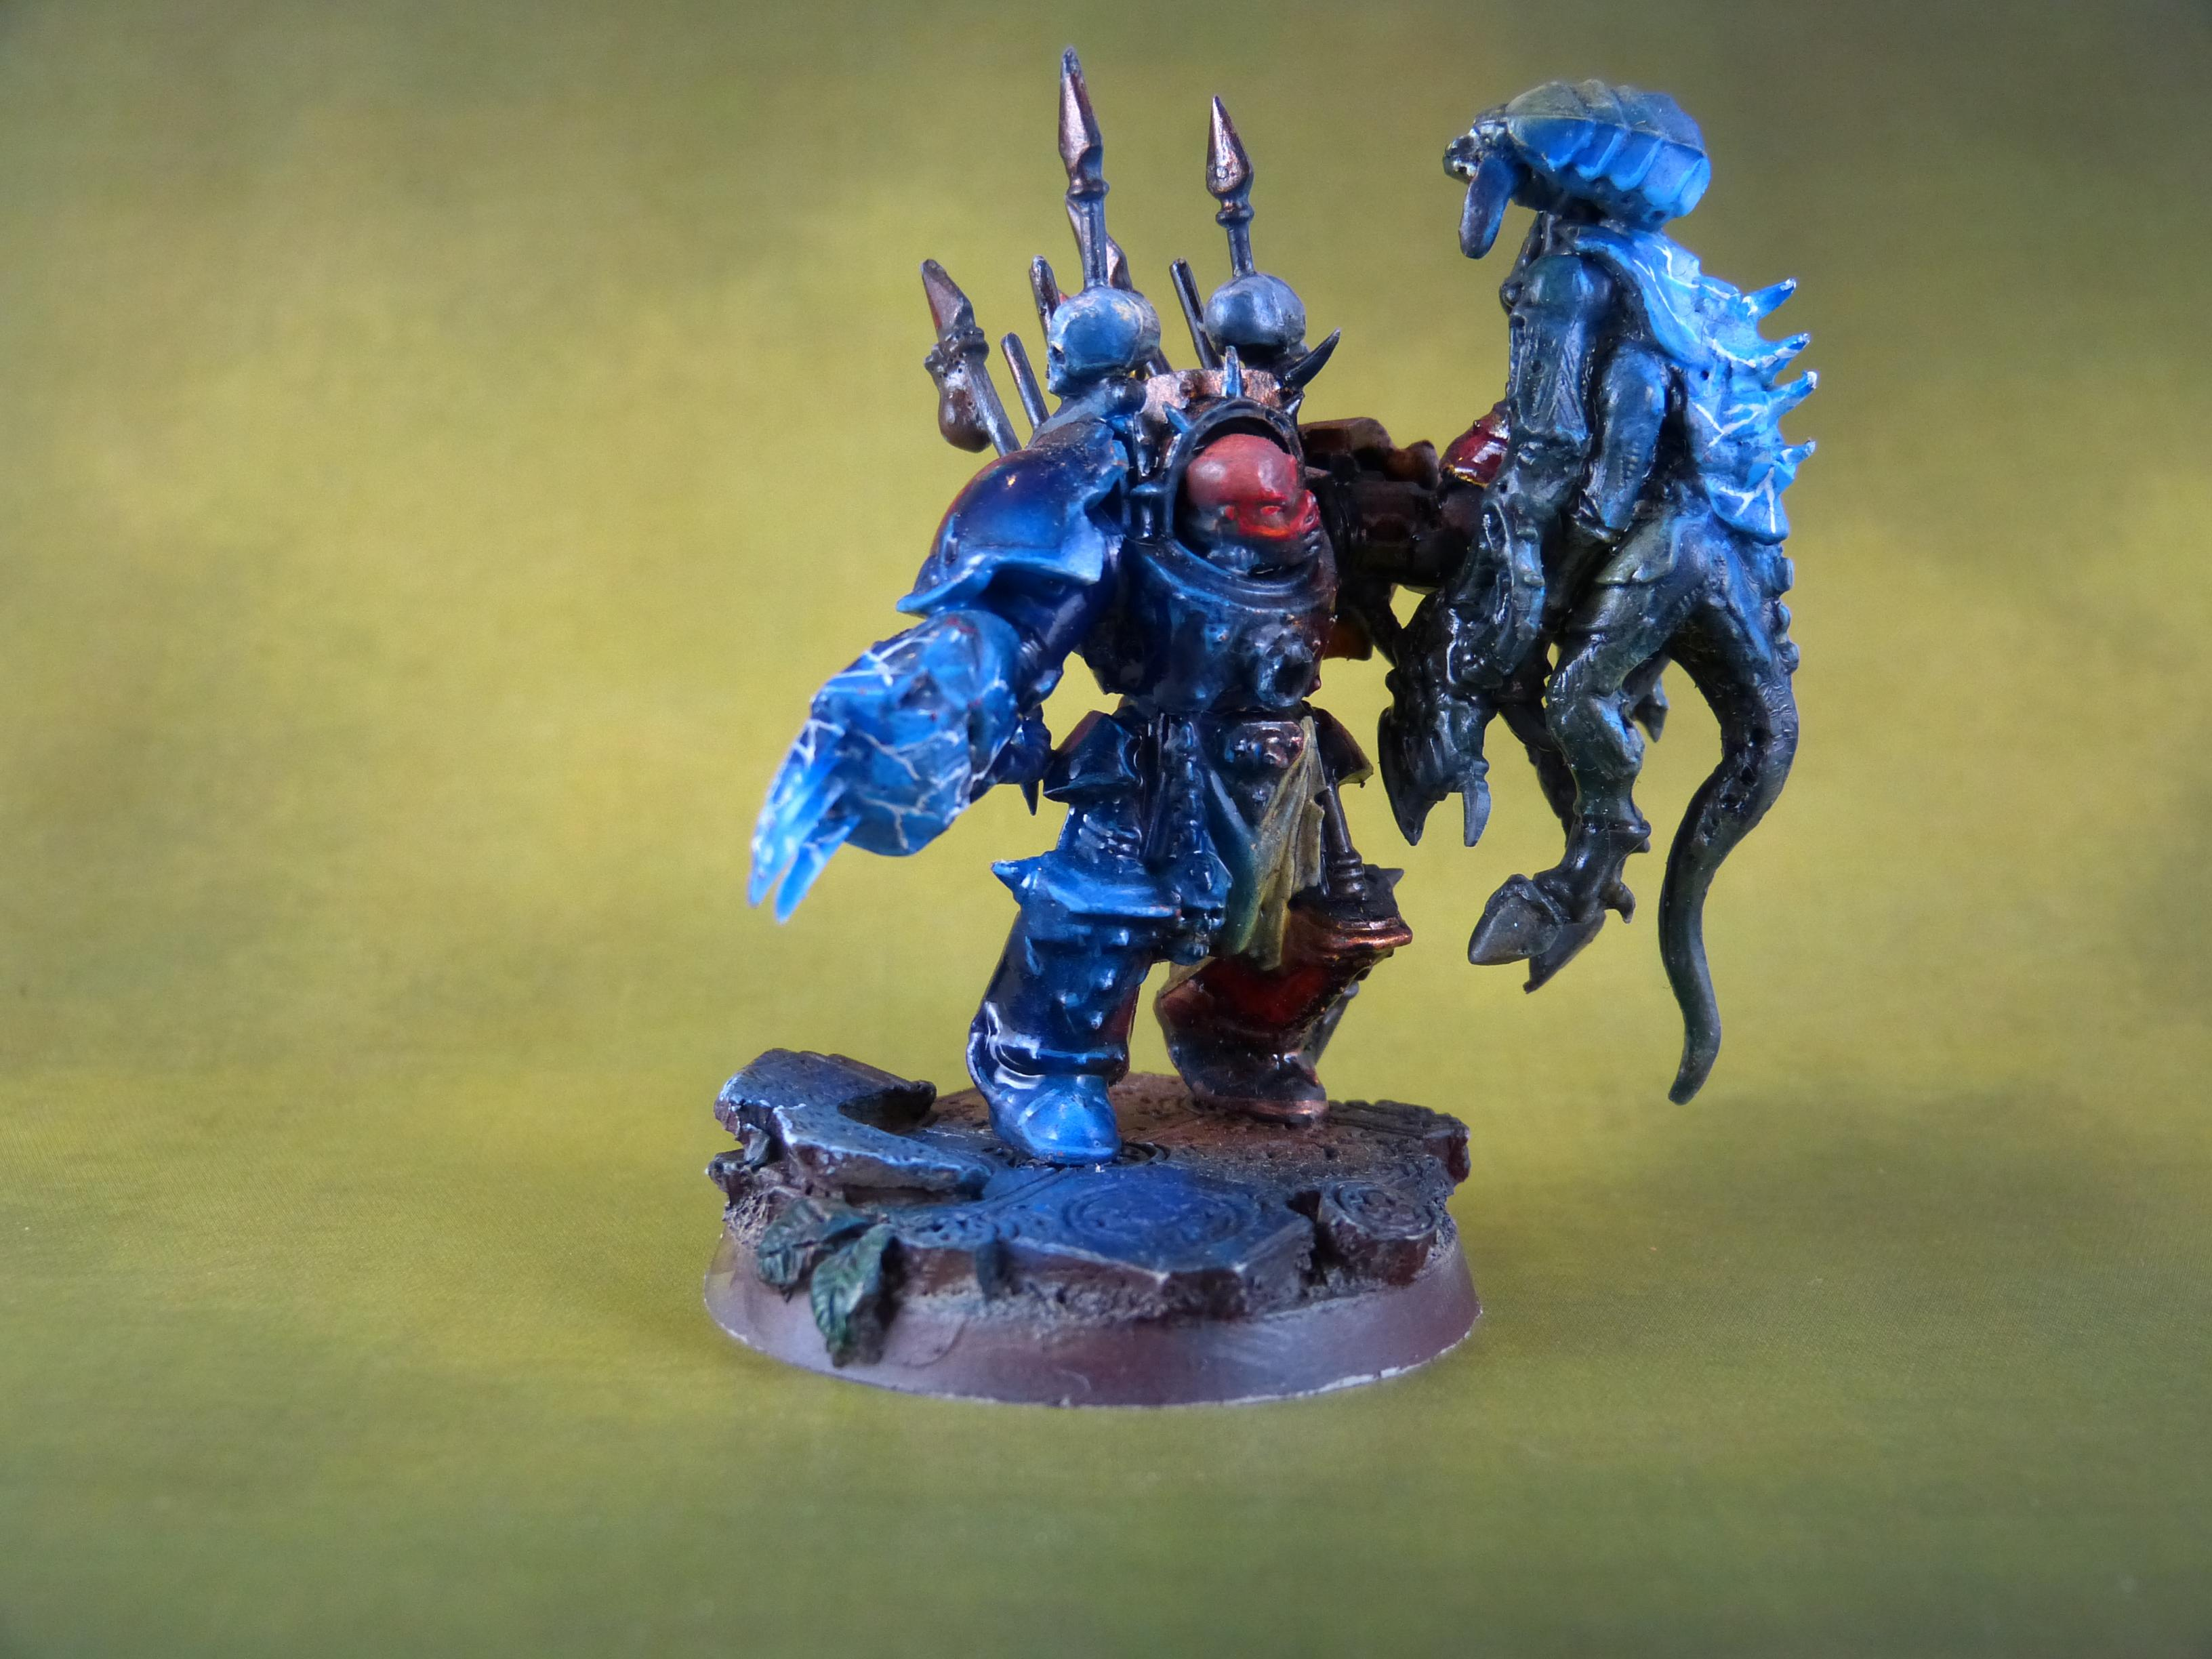 Airbrush, Chaos, Chaos Space Marines, Conversion, Object Source Lighting, Power Claw, Termagants, Terminator Armor, Tyranids, Warhammer 40 K